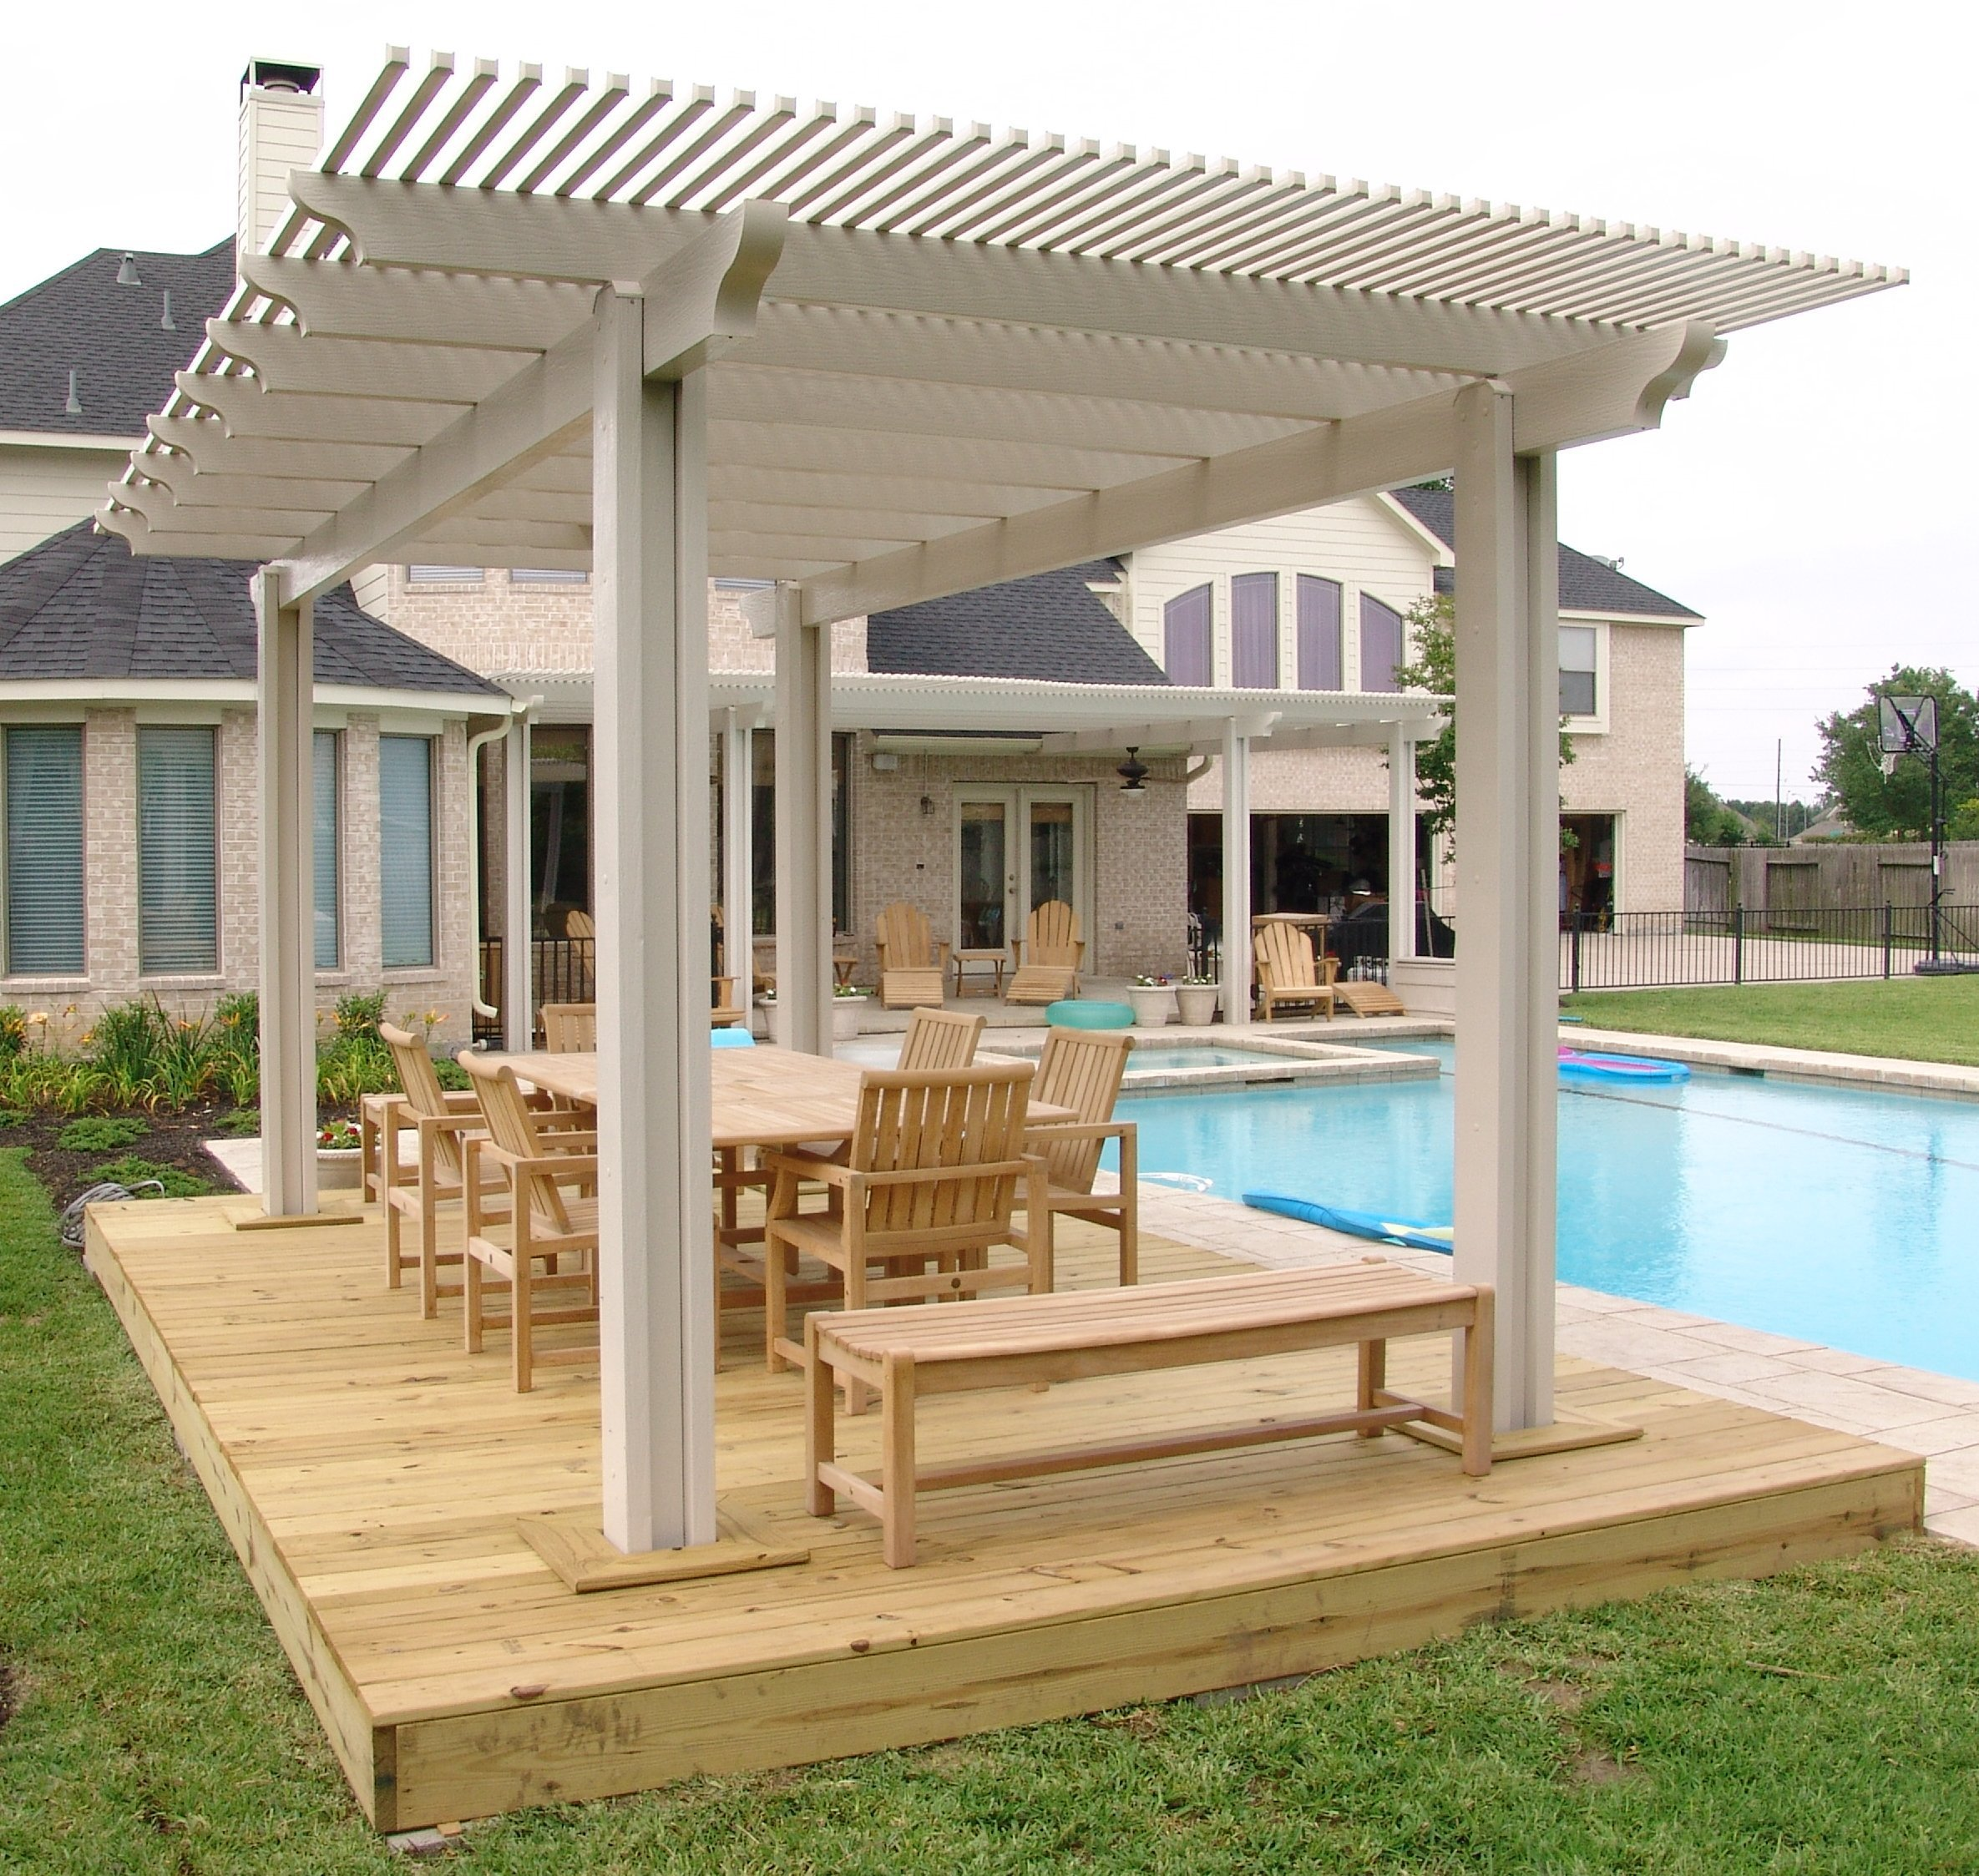 Pergola ideas houston pergola and gazebo construction - Pergolas rusticas de madera ...